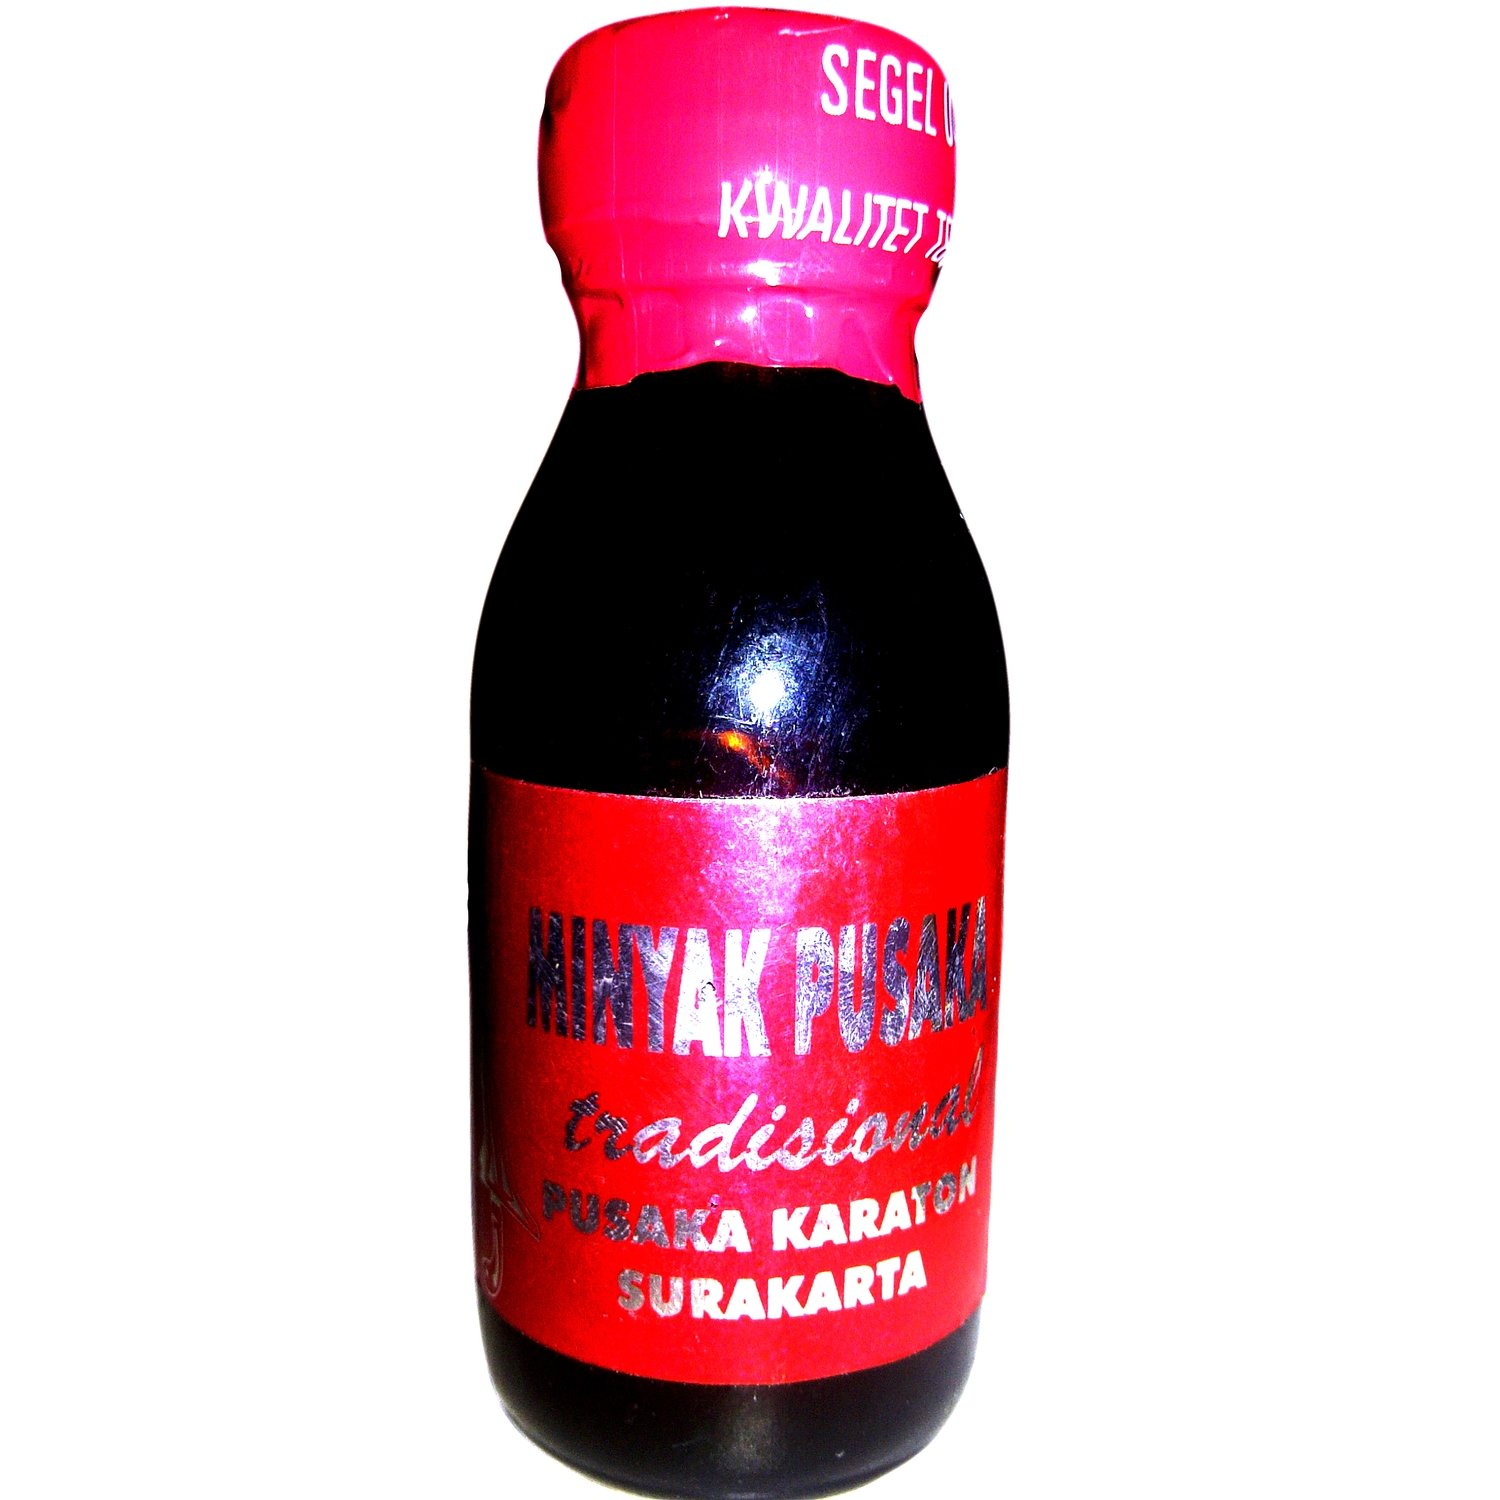 Traditional Pusaka Oil from the Keraton of Surakarta